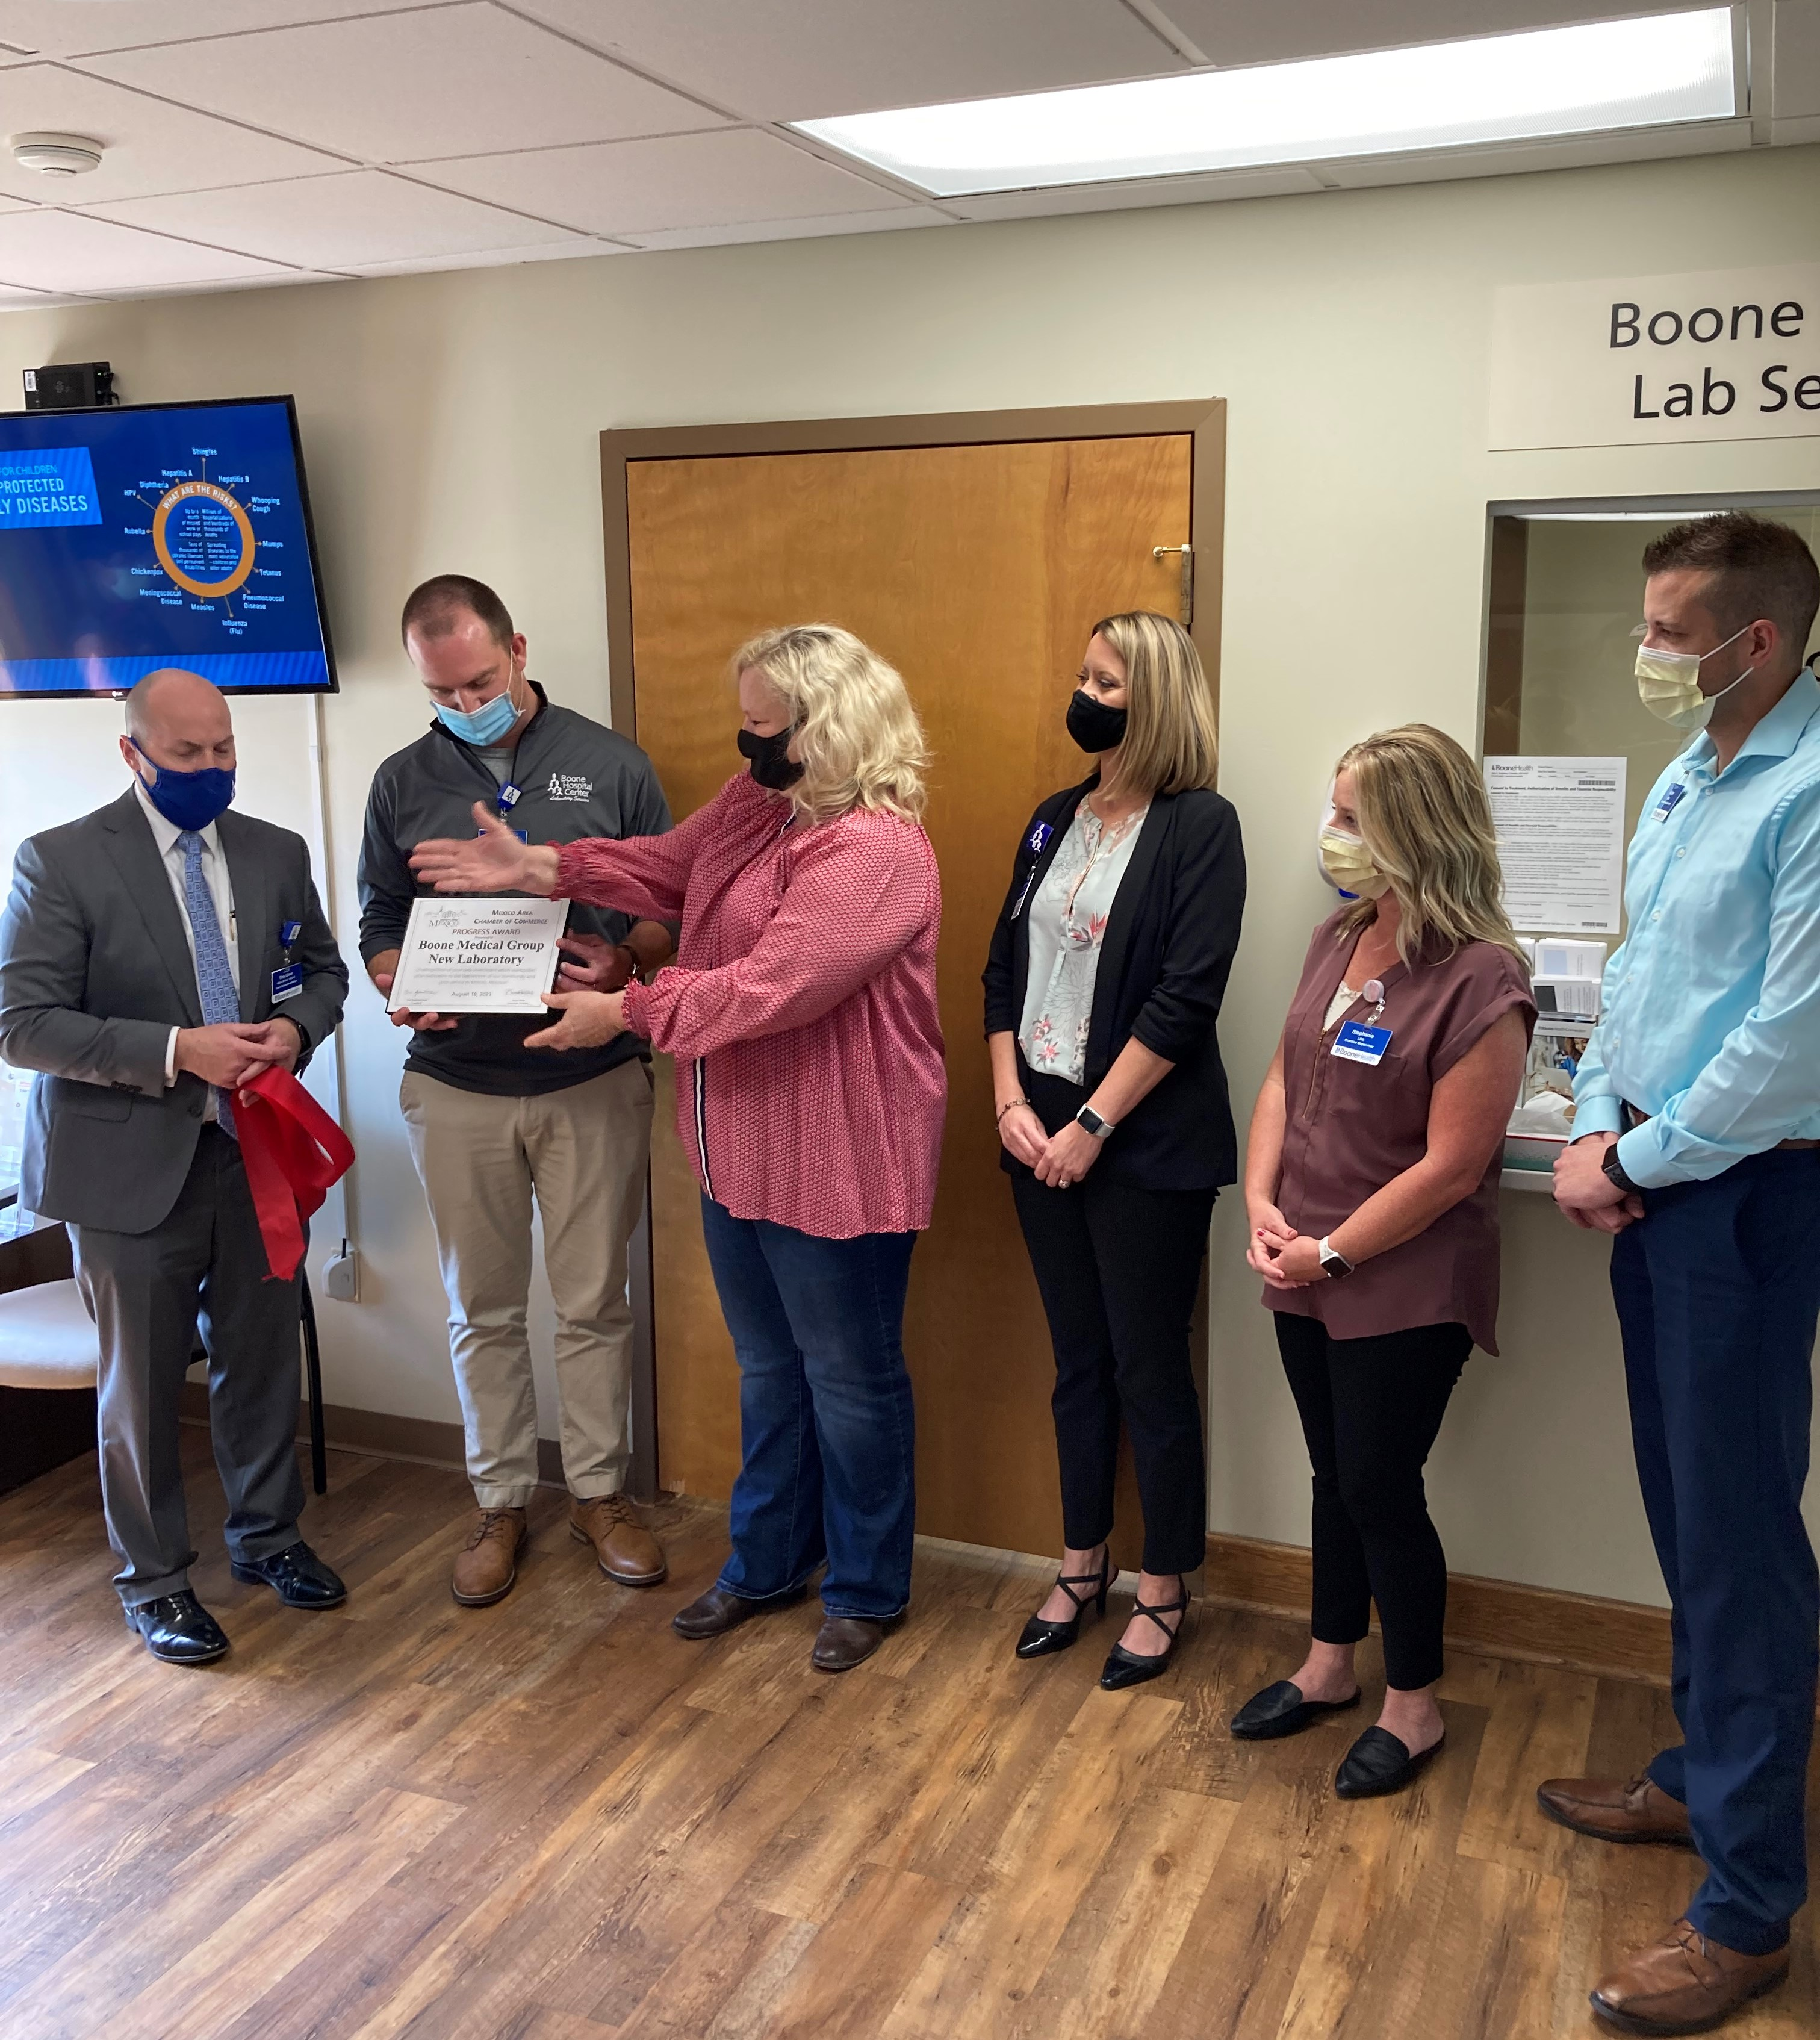 Ribbon Cutting For New Boone Medical Group Lab In Mexico